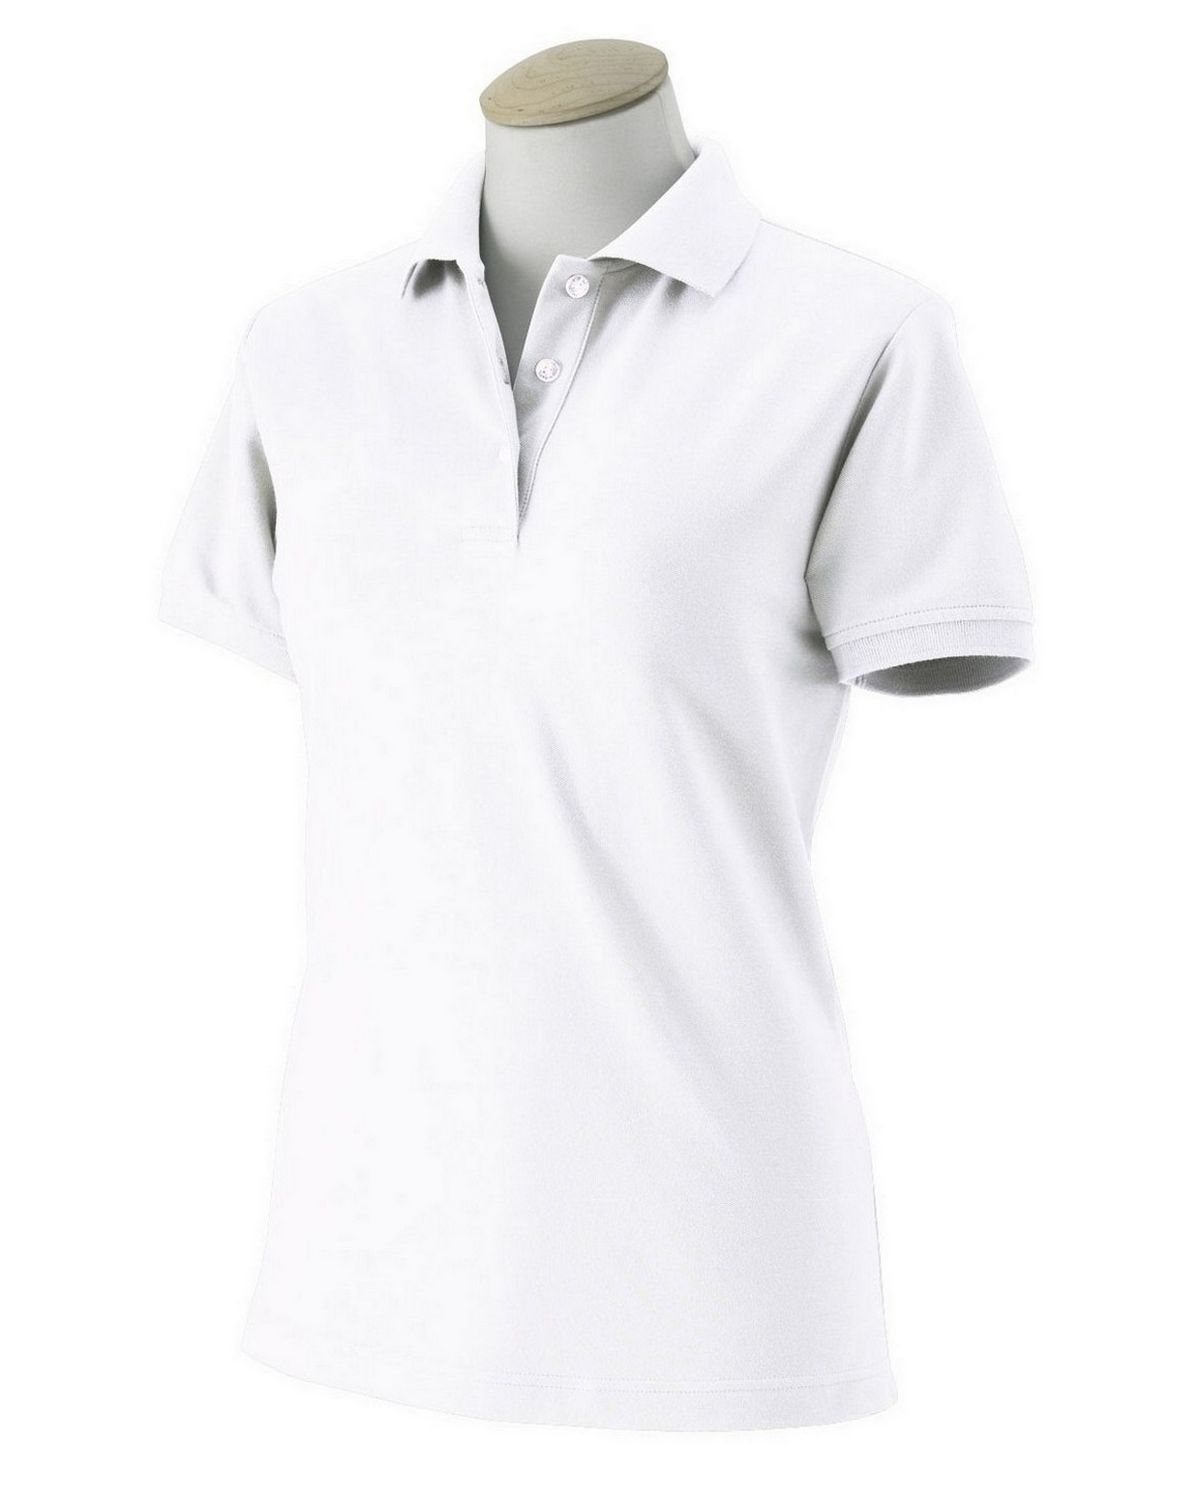 597fec9b1f3 Buy Izod 13Z0063 Womens Silk Wash Pique Polo